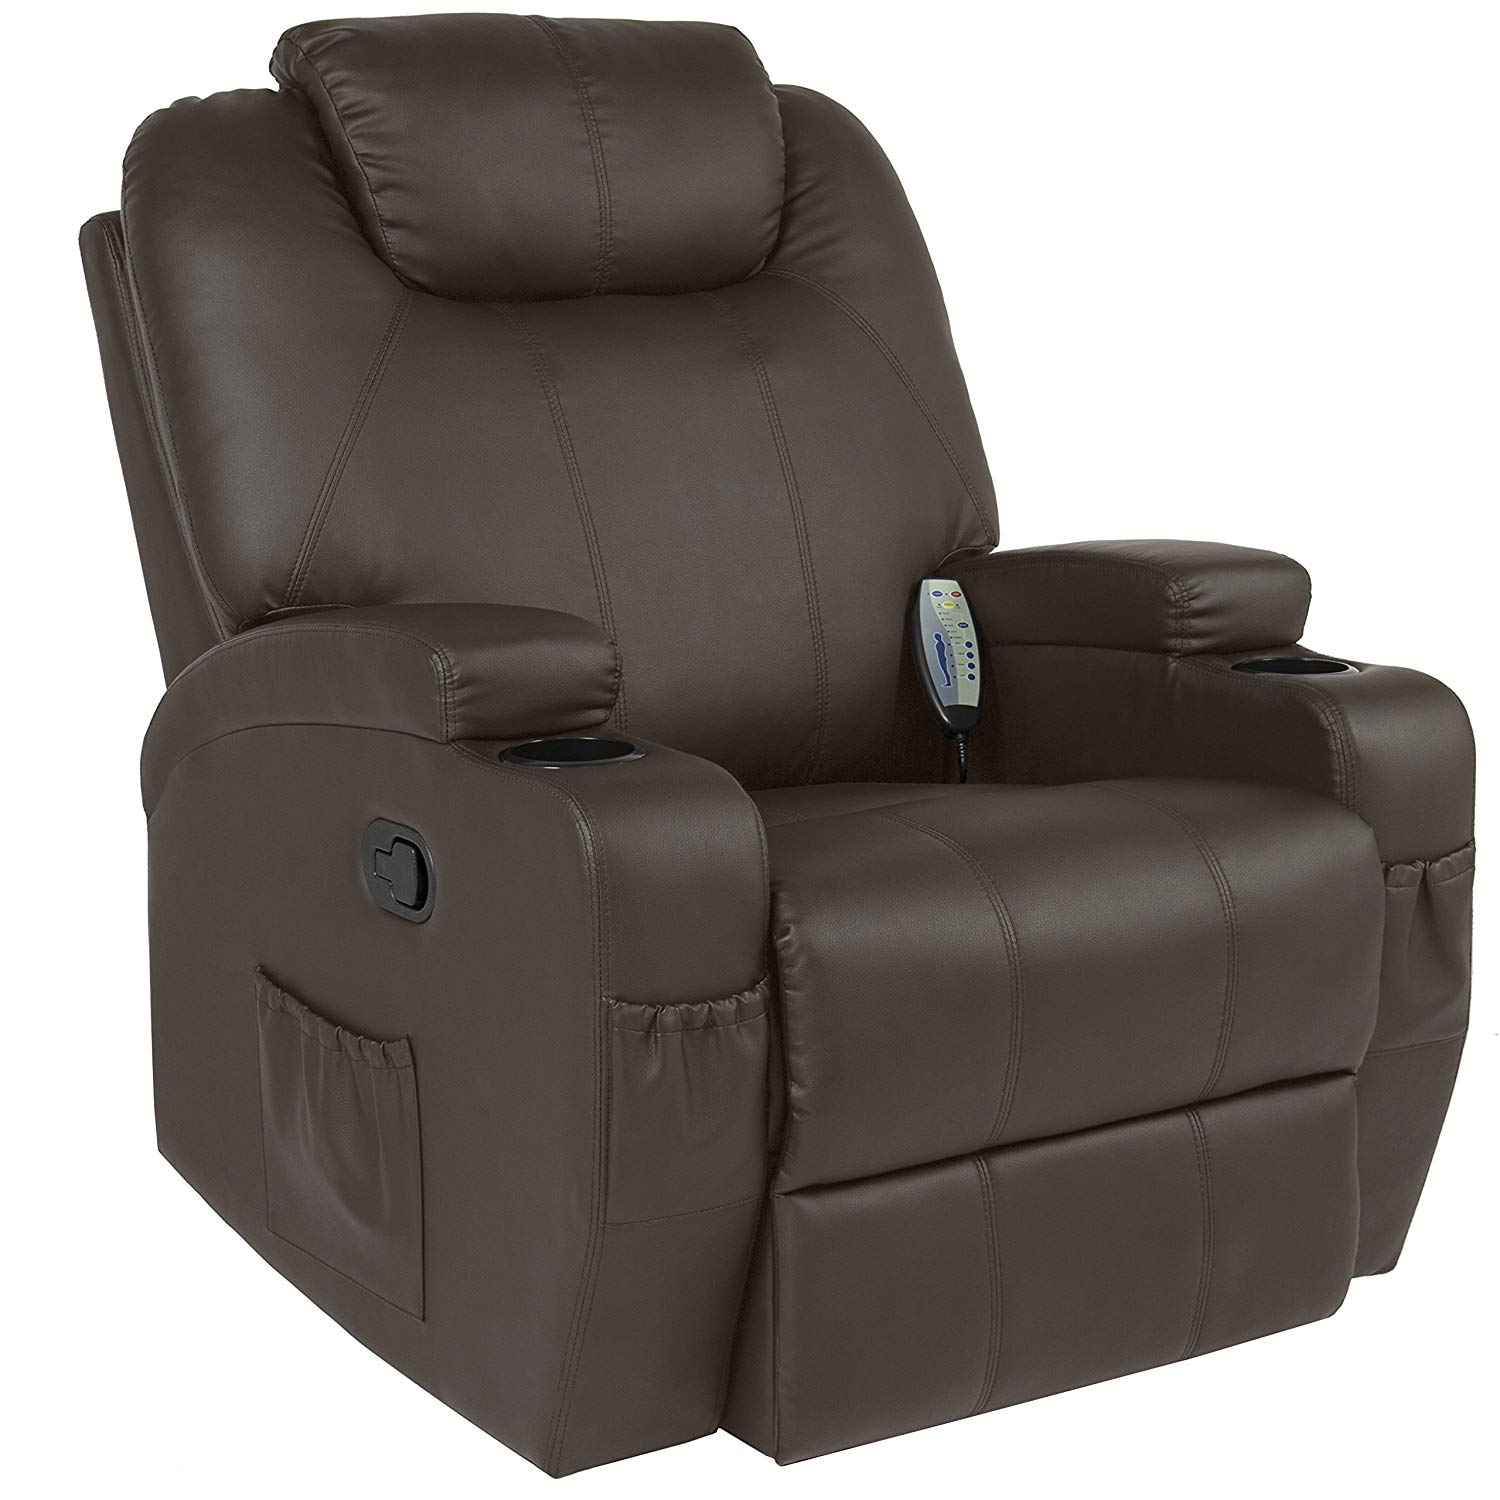 Executive Swivel Recliner sofa w/Remote Control, 2 Cup Holders, 5 Modes from Best Choice Products